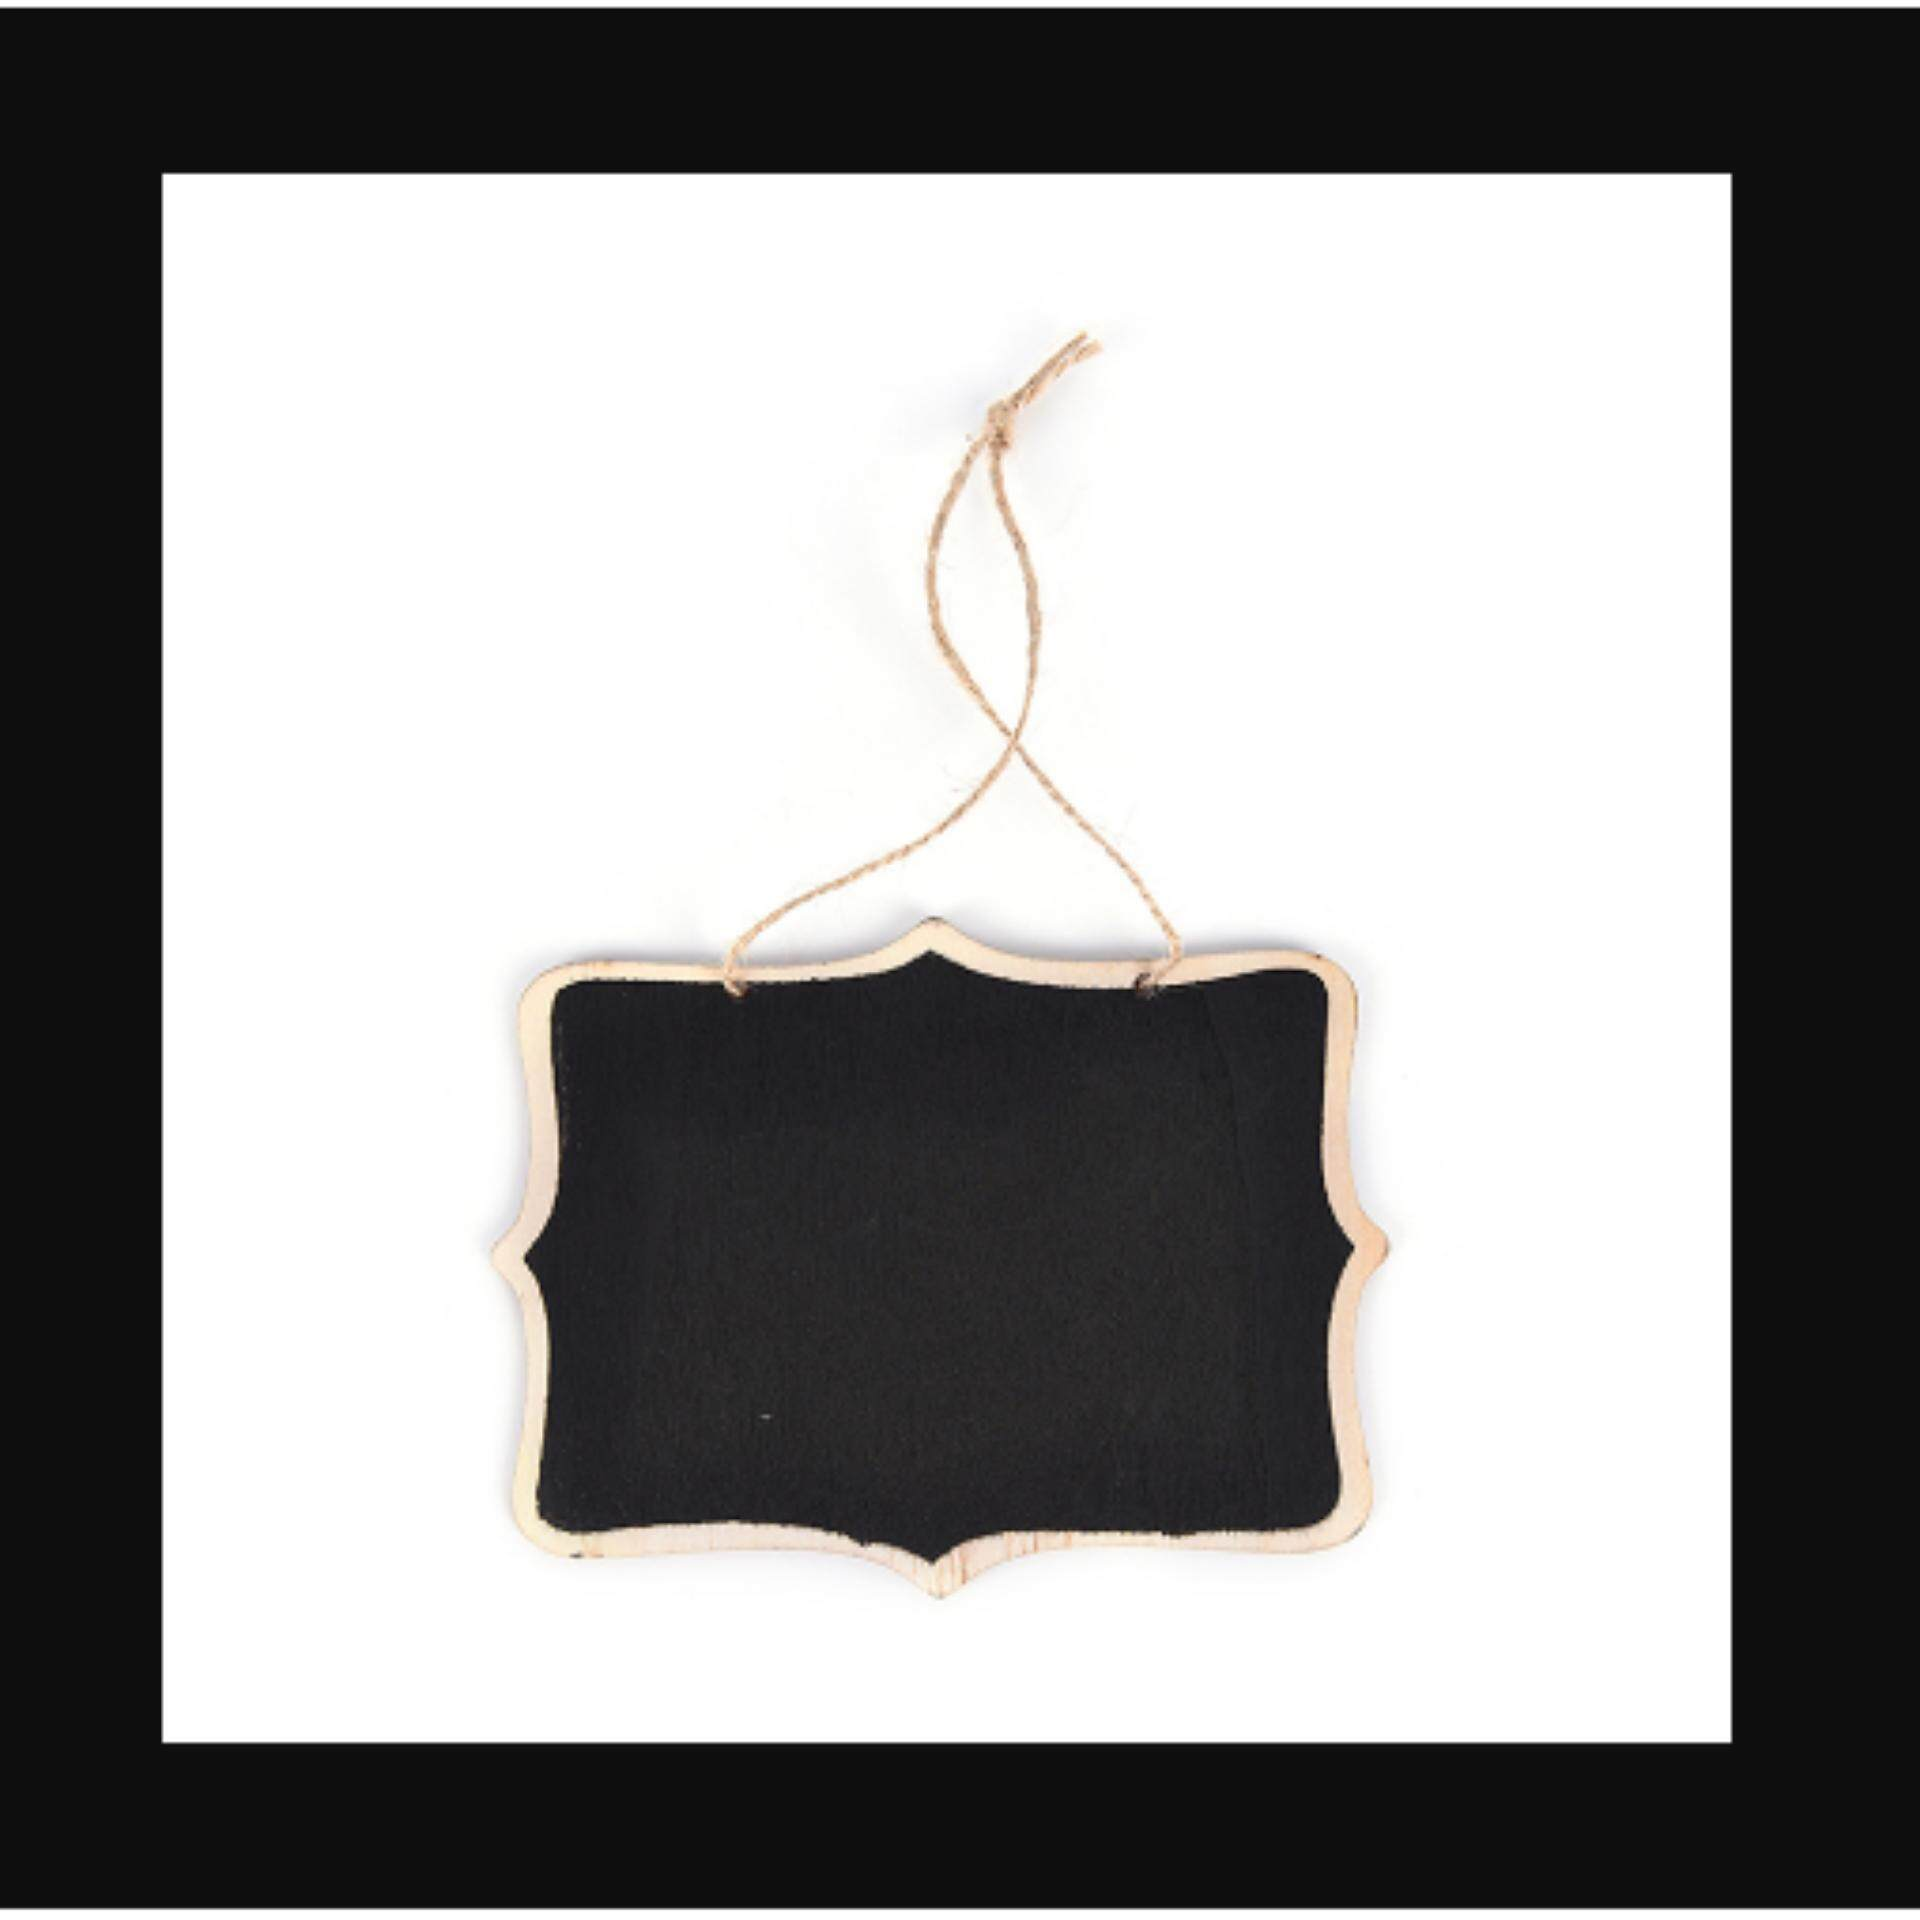 Mini Wooden Wedding Blackboard Chalkboard Hanging Message Number Party Decor - Intl By Crystal Wave.